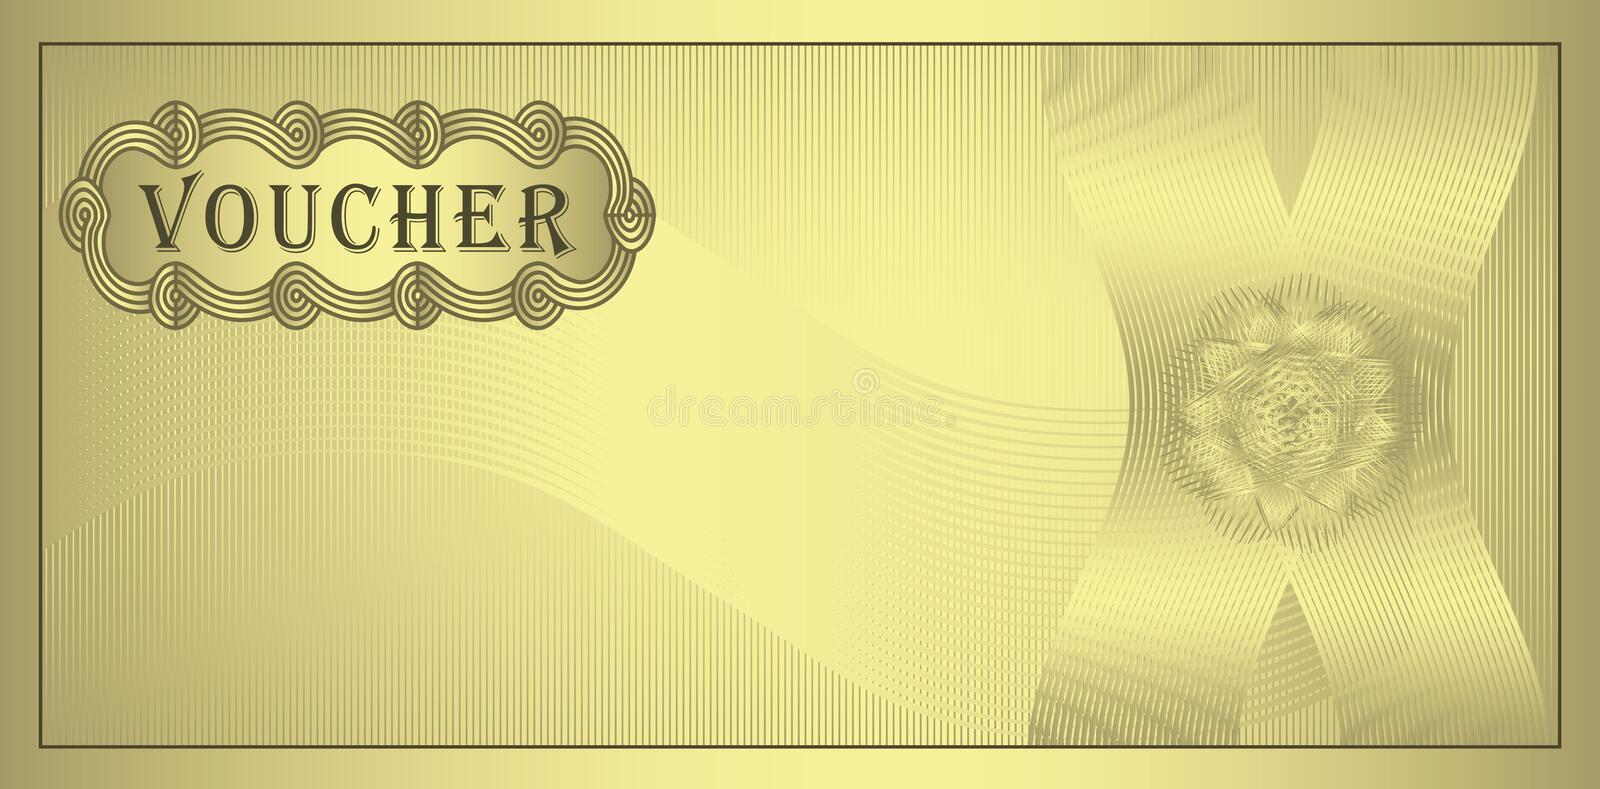 Download Voucher gold stock vector. Image of pattern, printing - 20903297